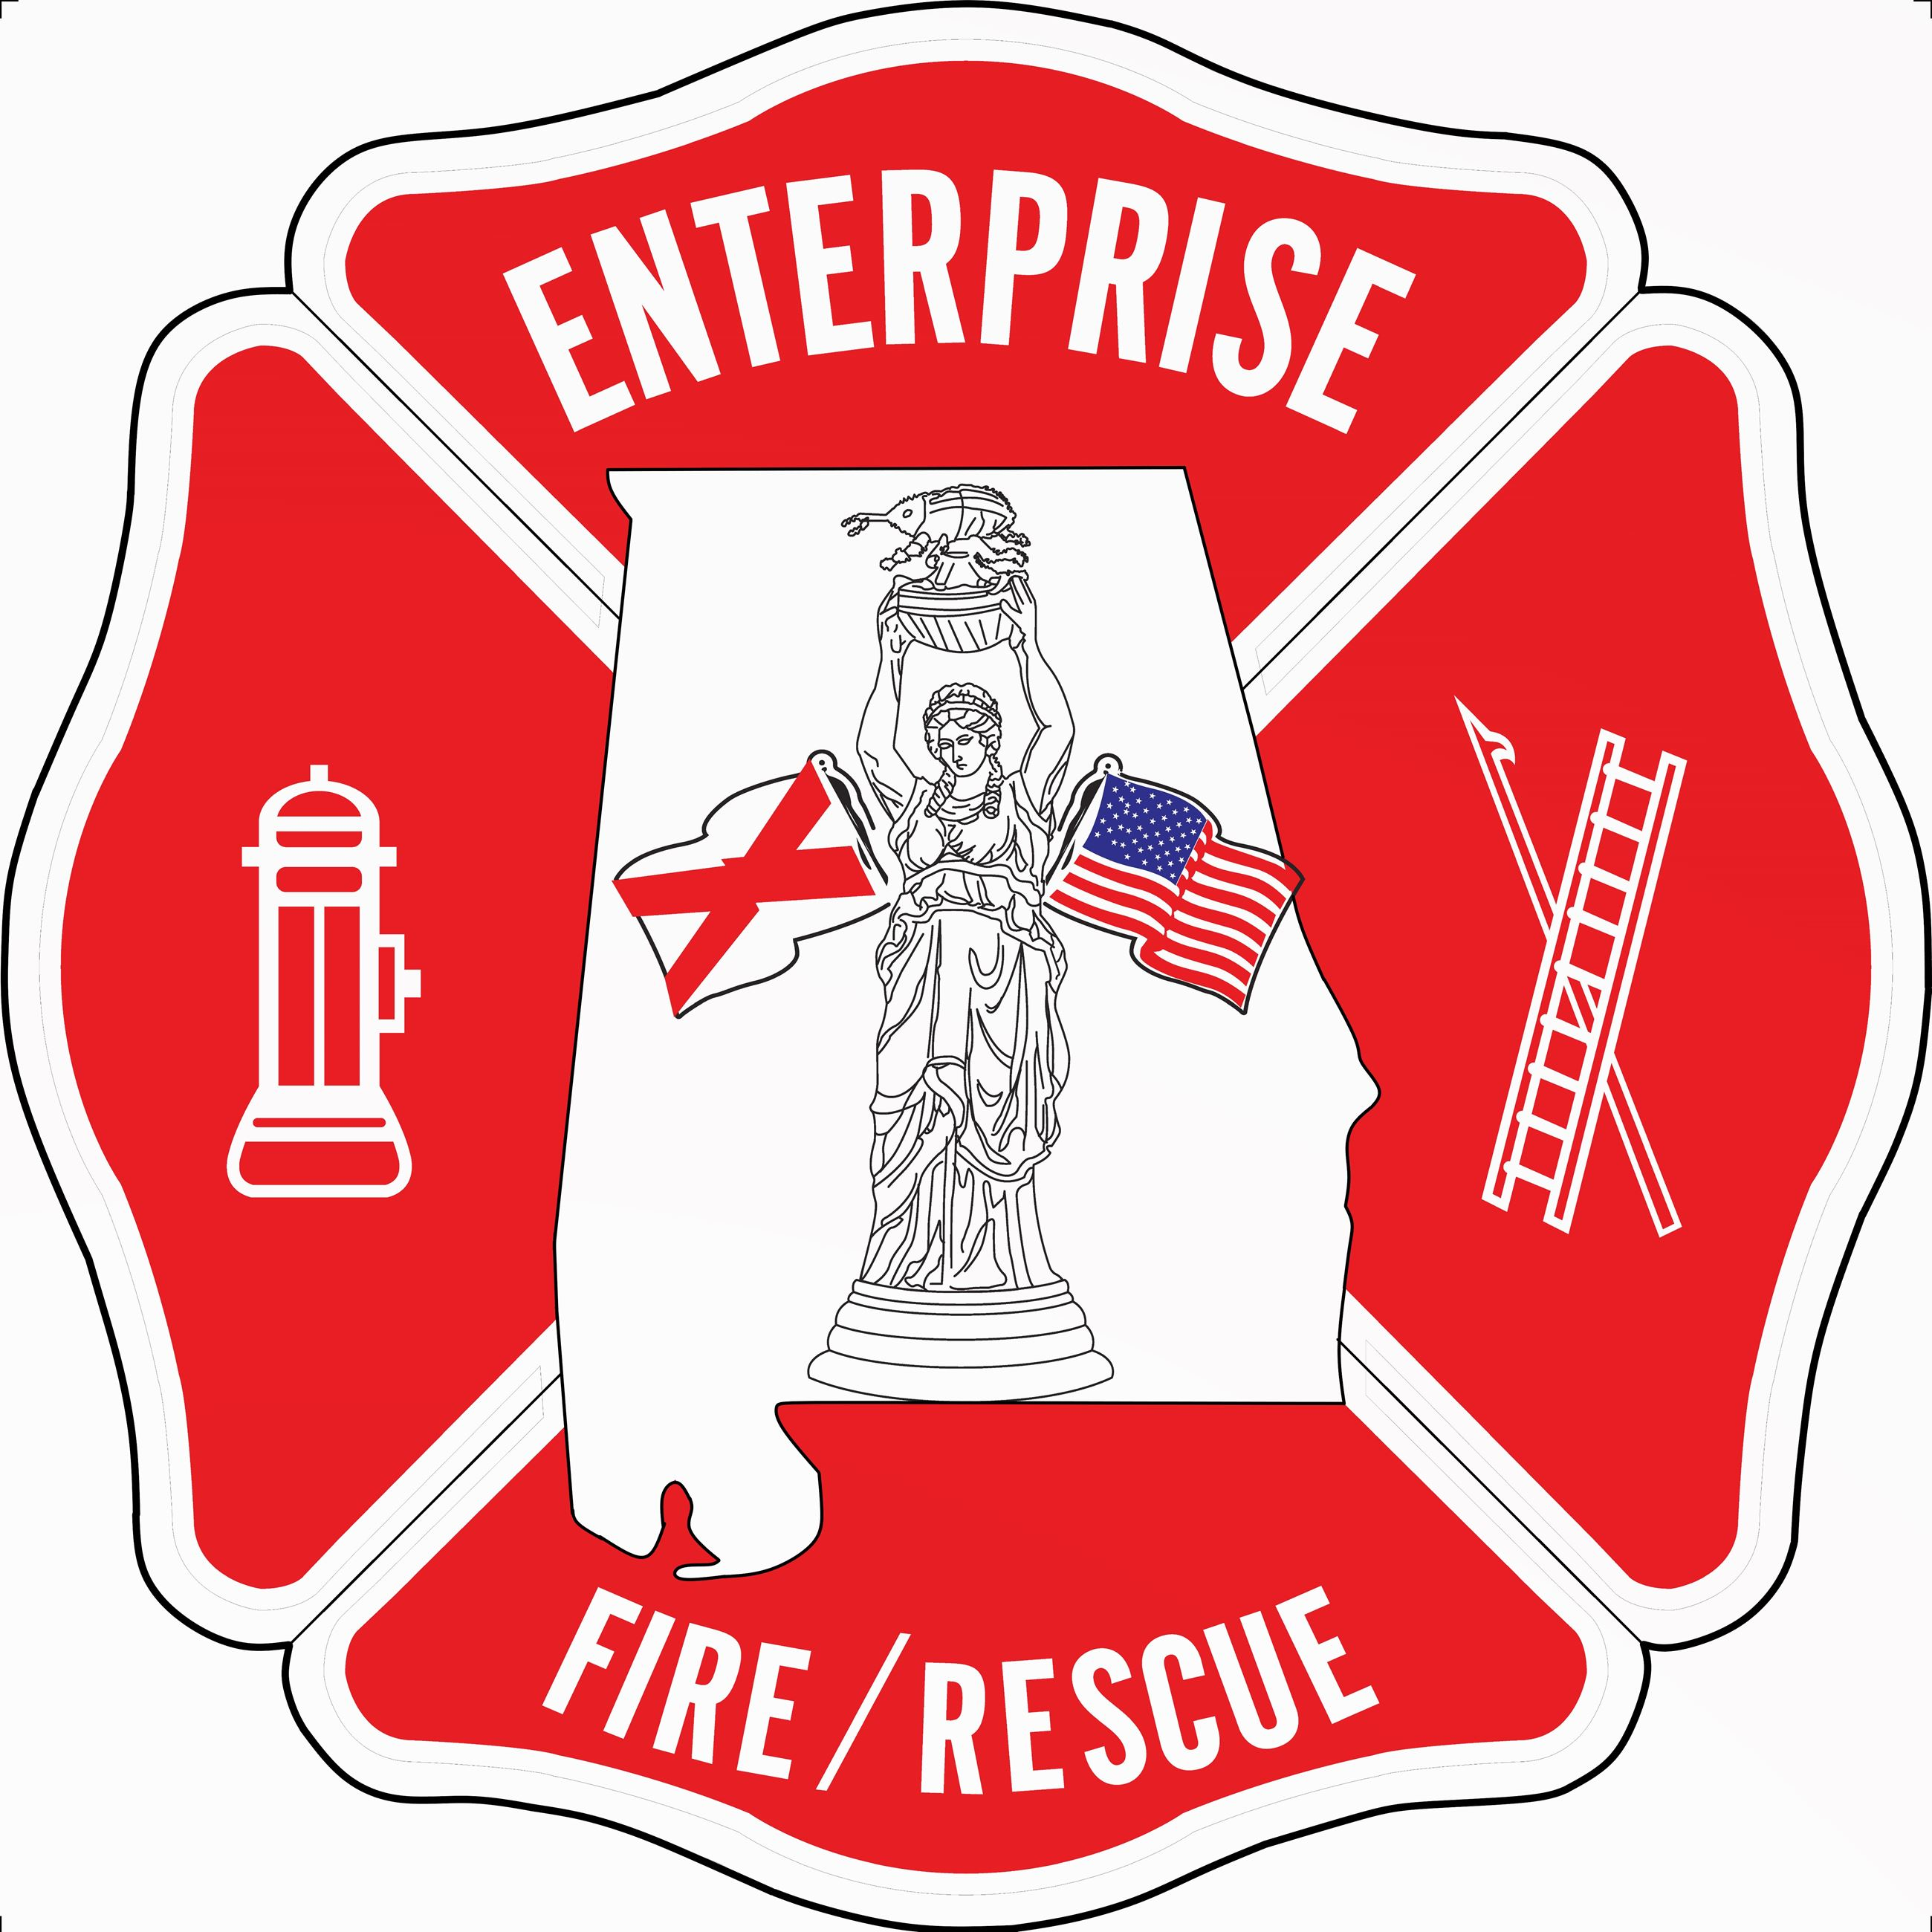 Maltese cross design for Enterprise Fire Department